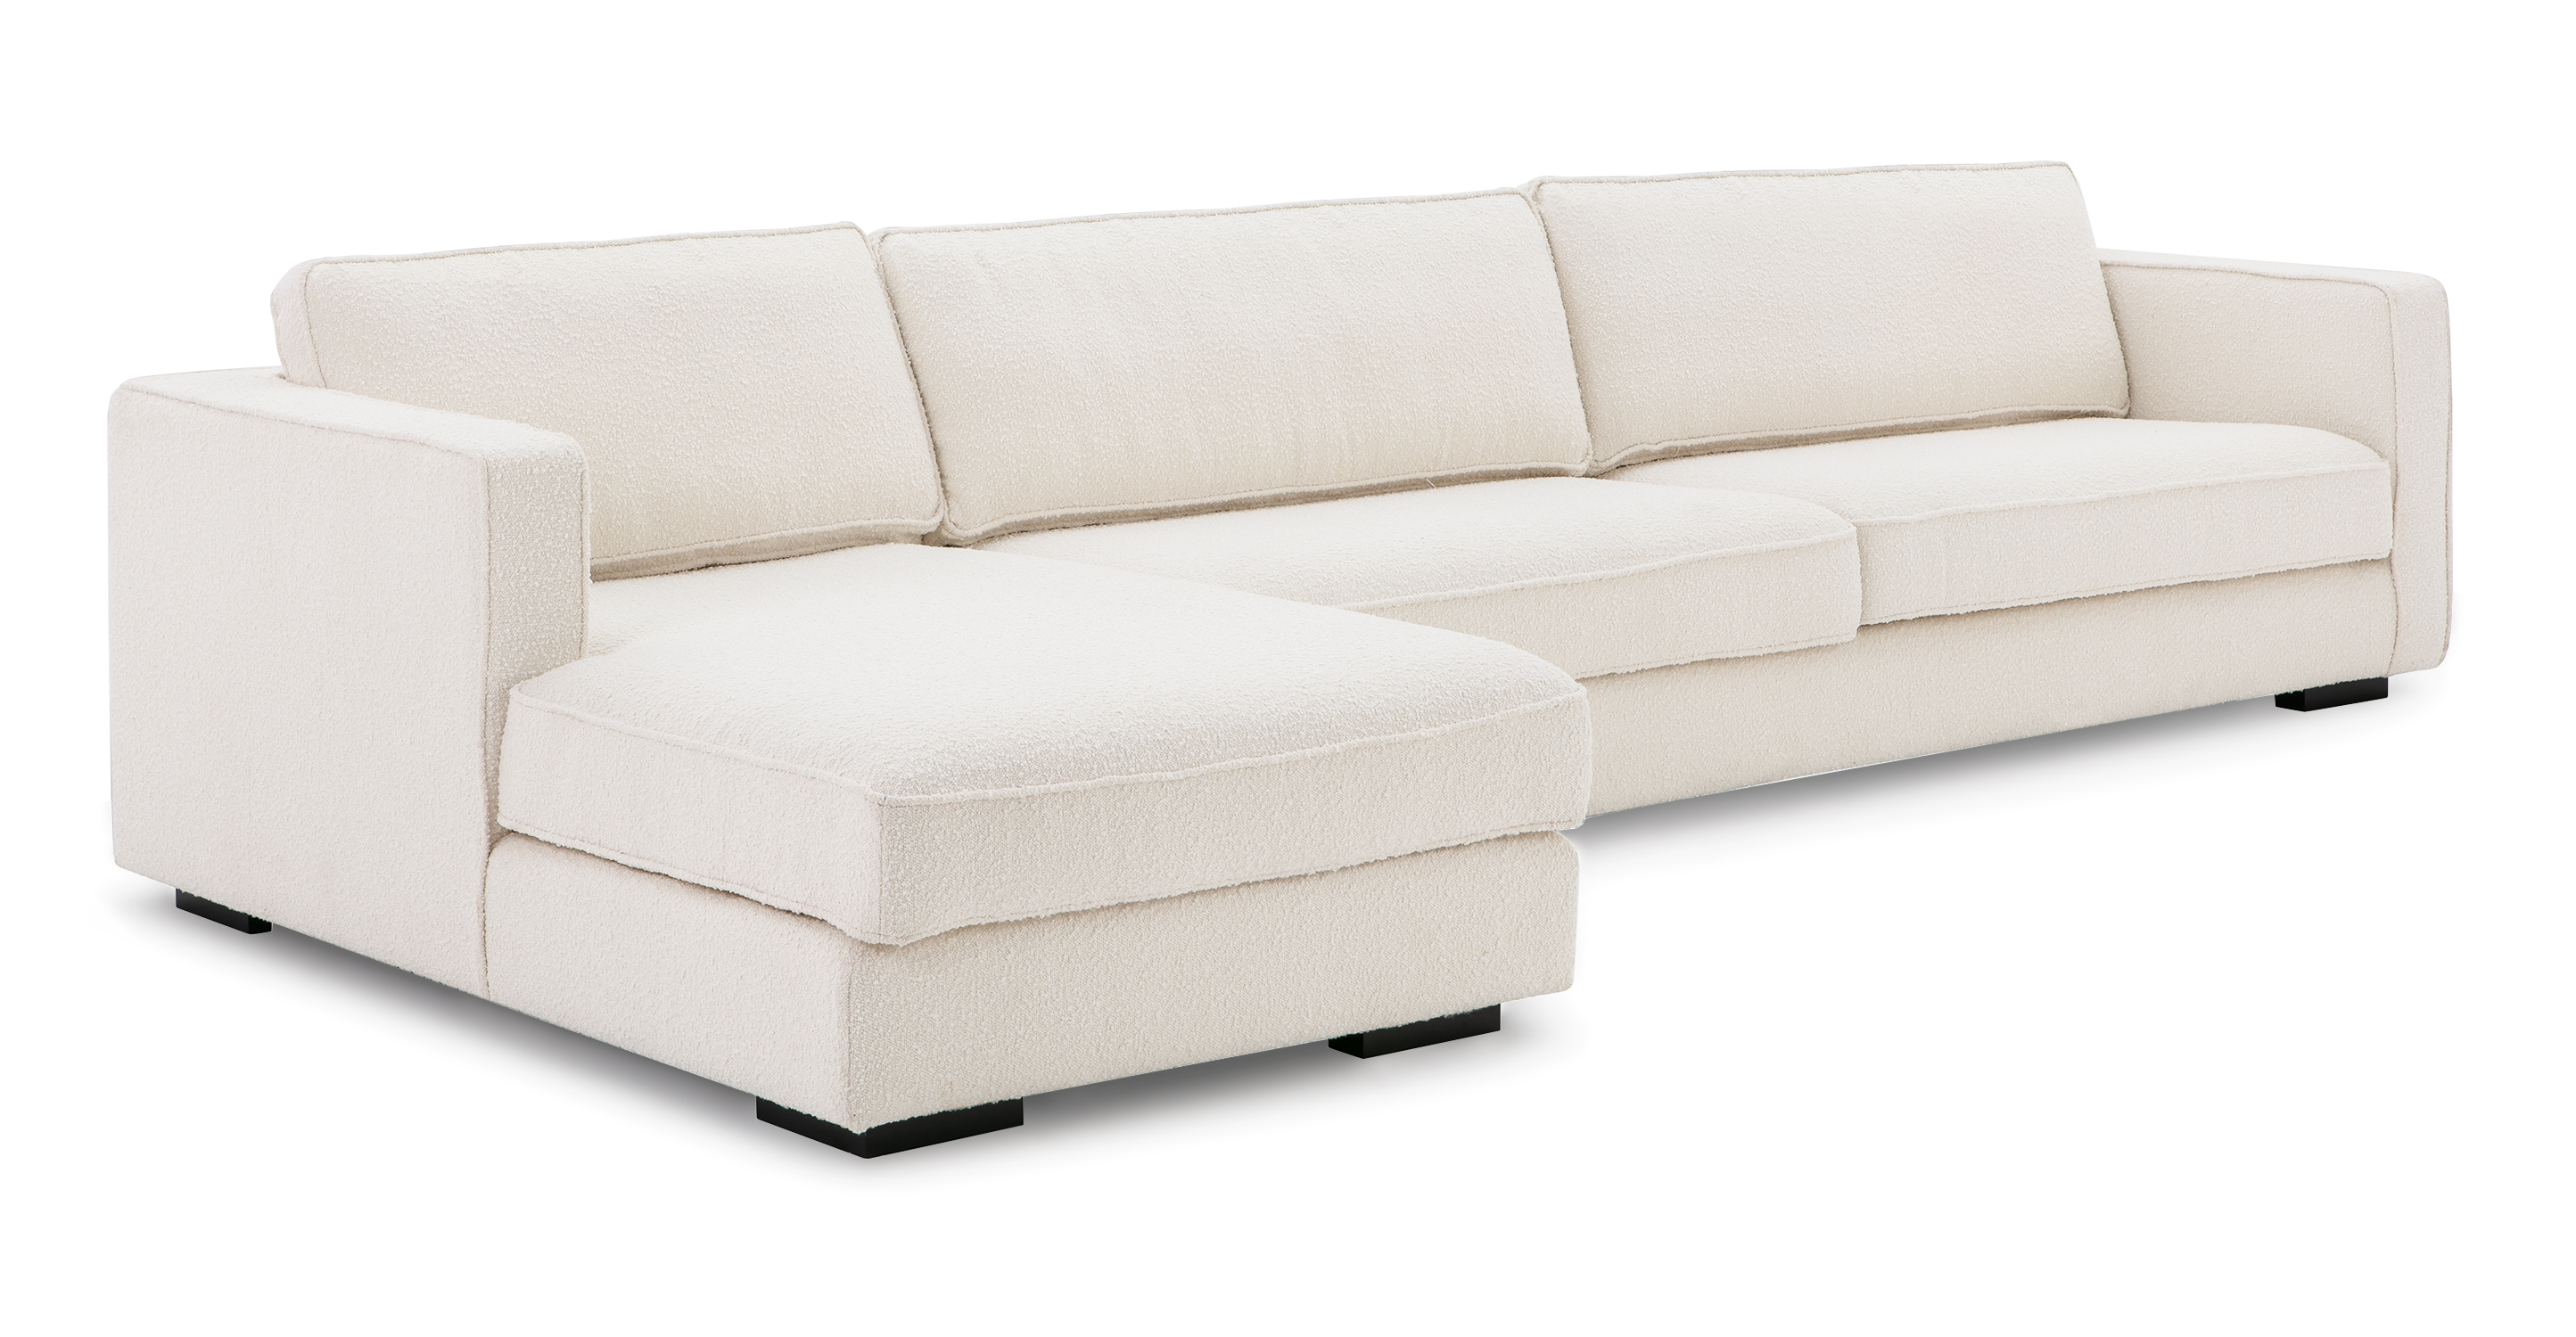 "Architect 133"" Fabric Sofa Sectional Left, Blanc Boucle"